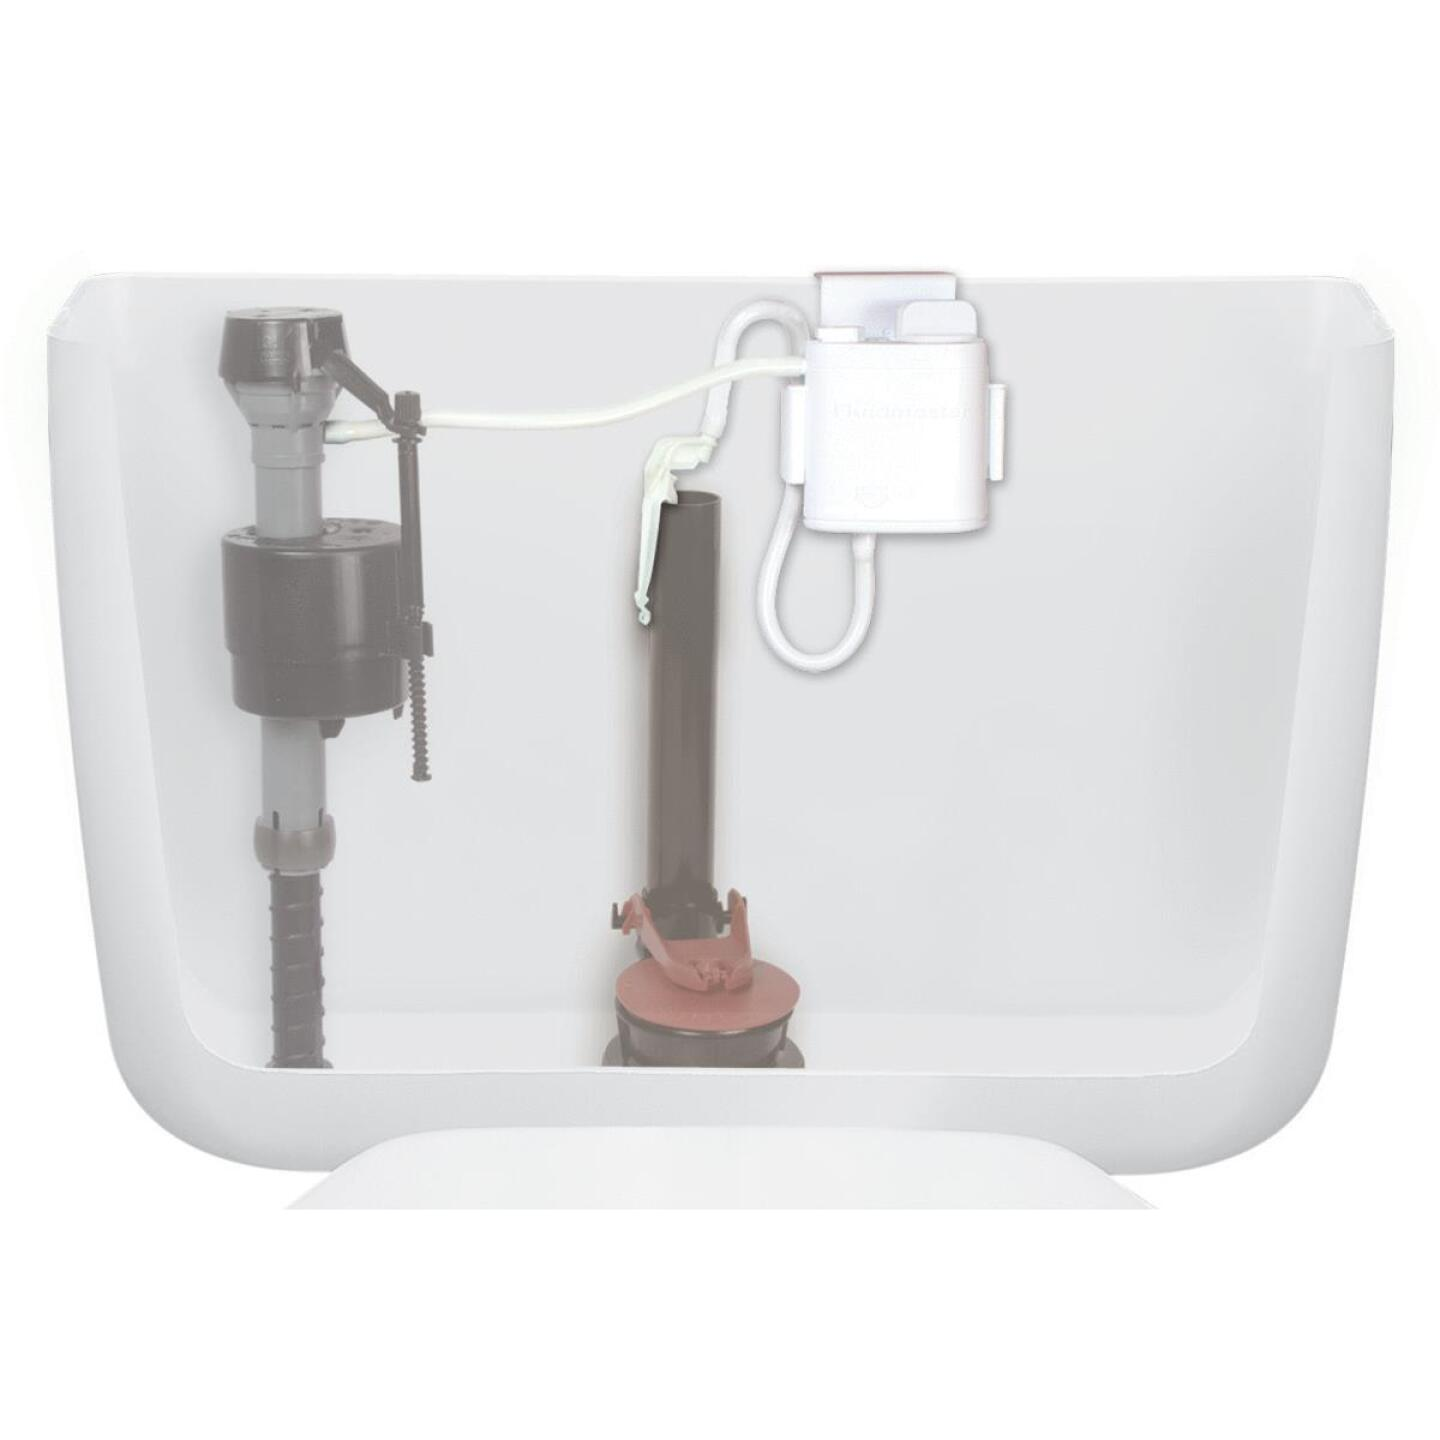 Fluidmaster Flush 'n Sparkle Automatic Toilet Bowl Cleaning System with Bleach Image 3